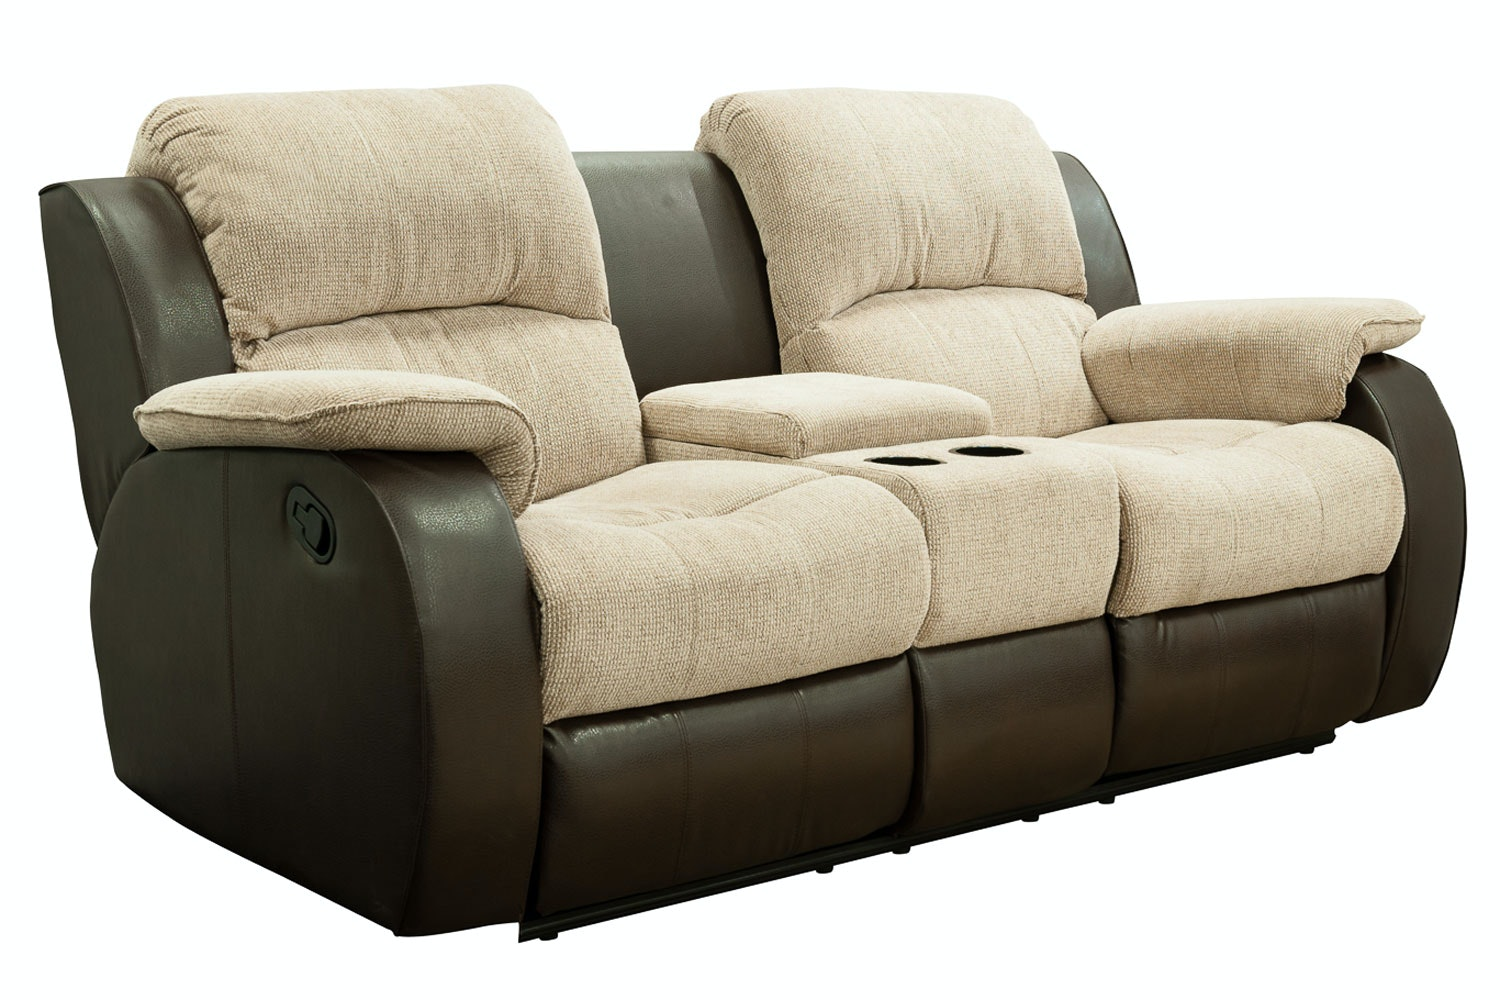 Kayde Console Recliner Sofa Ireland ~ Sofa Recliner With Console